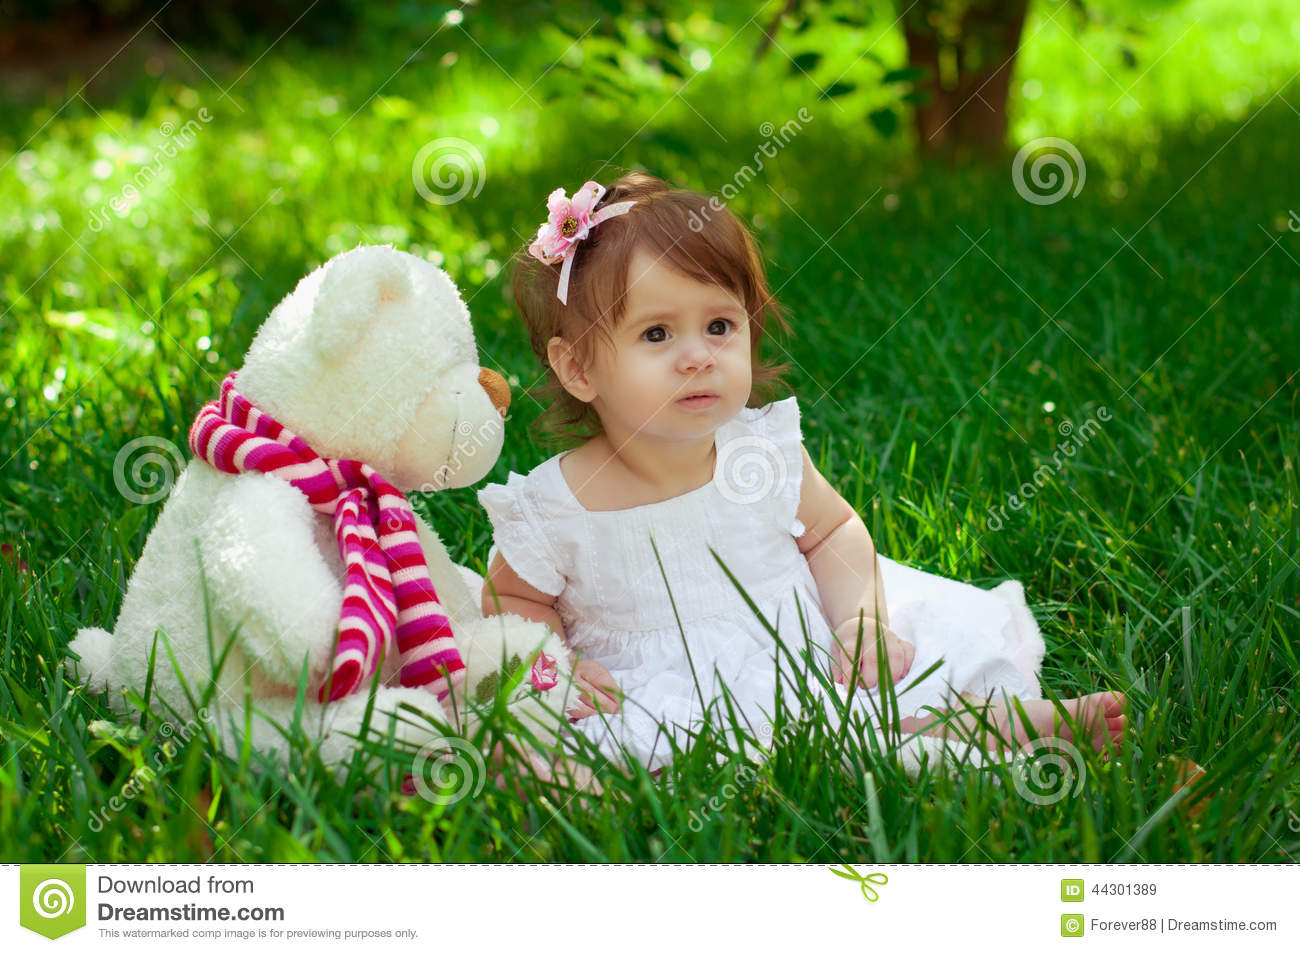 6deeaad112e1 Beautiful baby girl stock image. Image of beauty